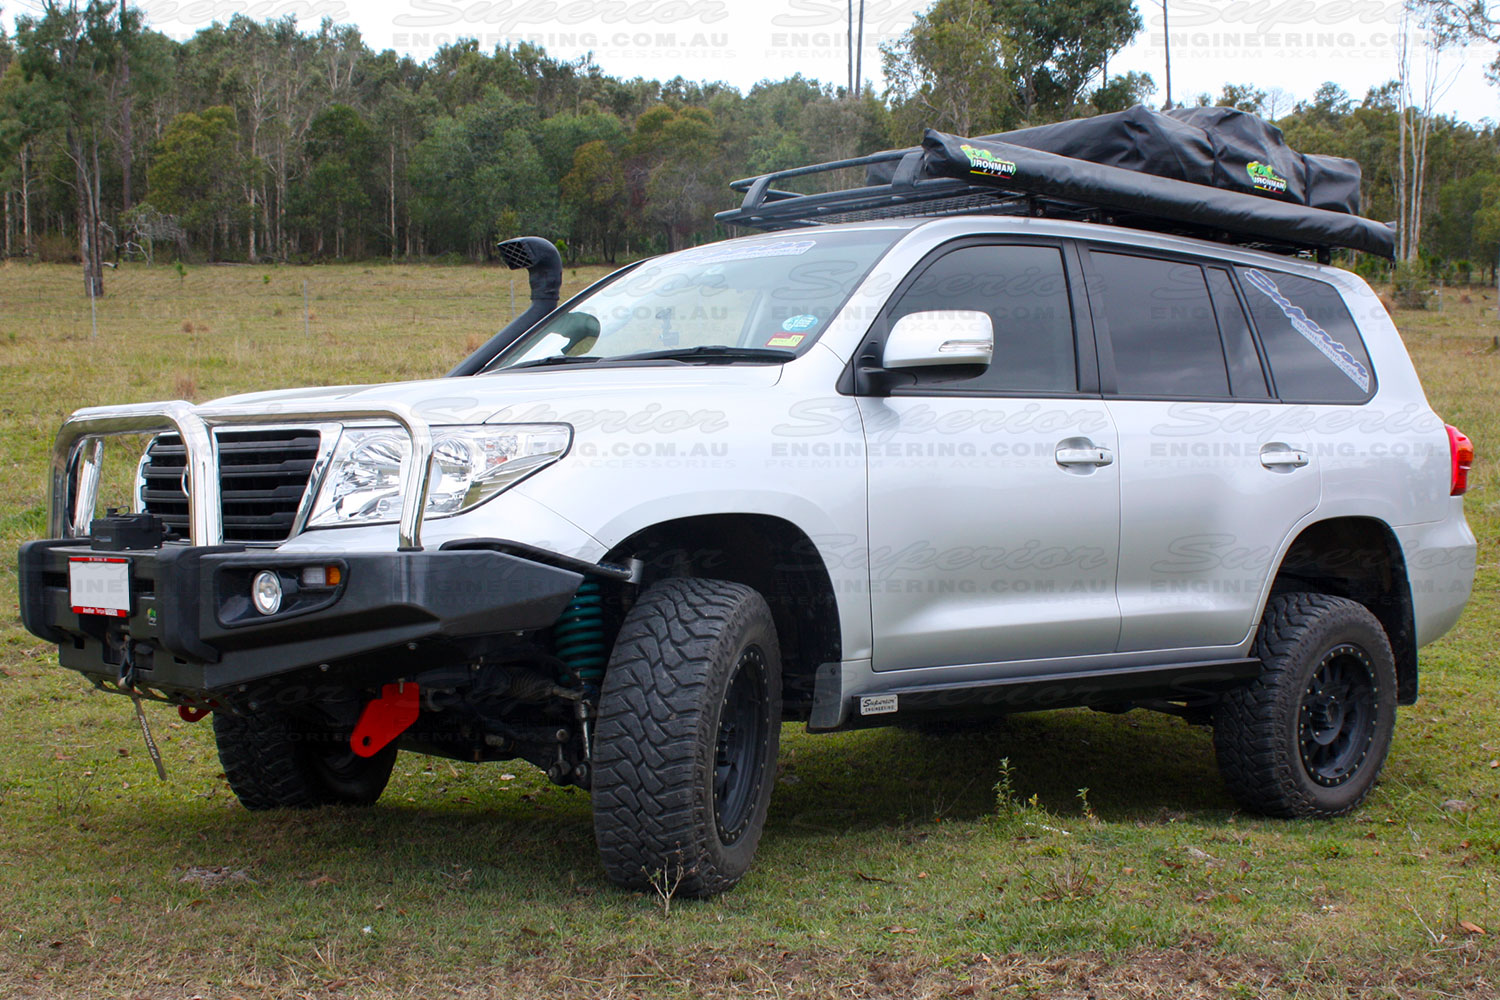 Toyota Landcruiser 200 Series with a set of Superior Stealth Rock Sliders fitted